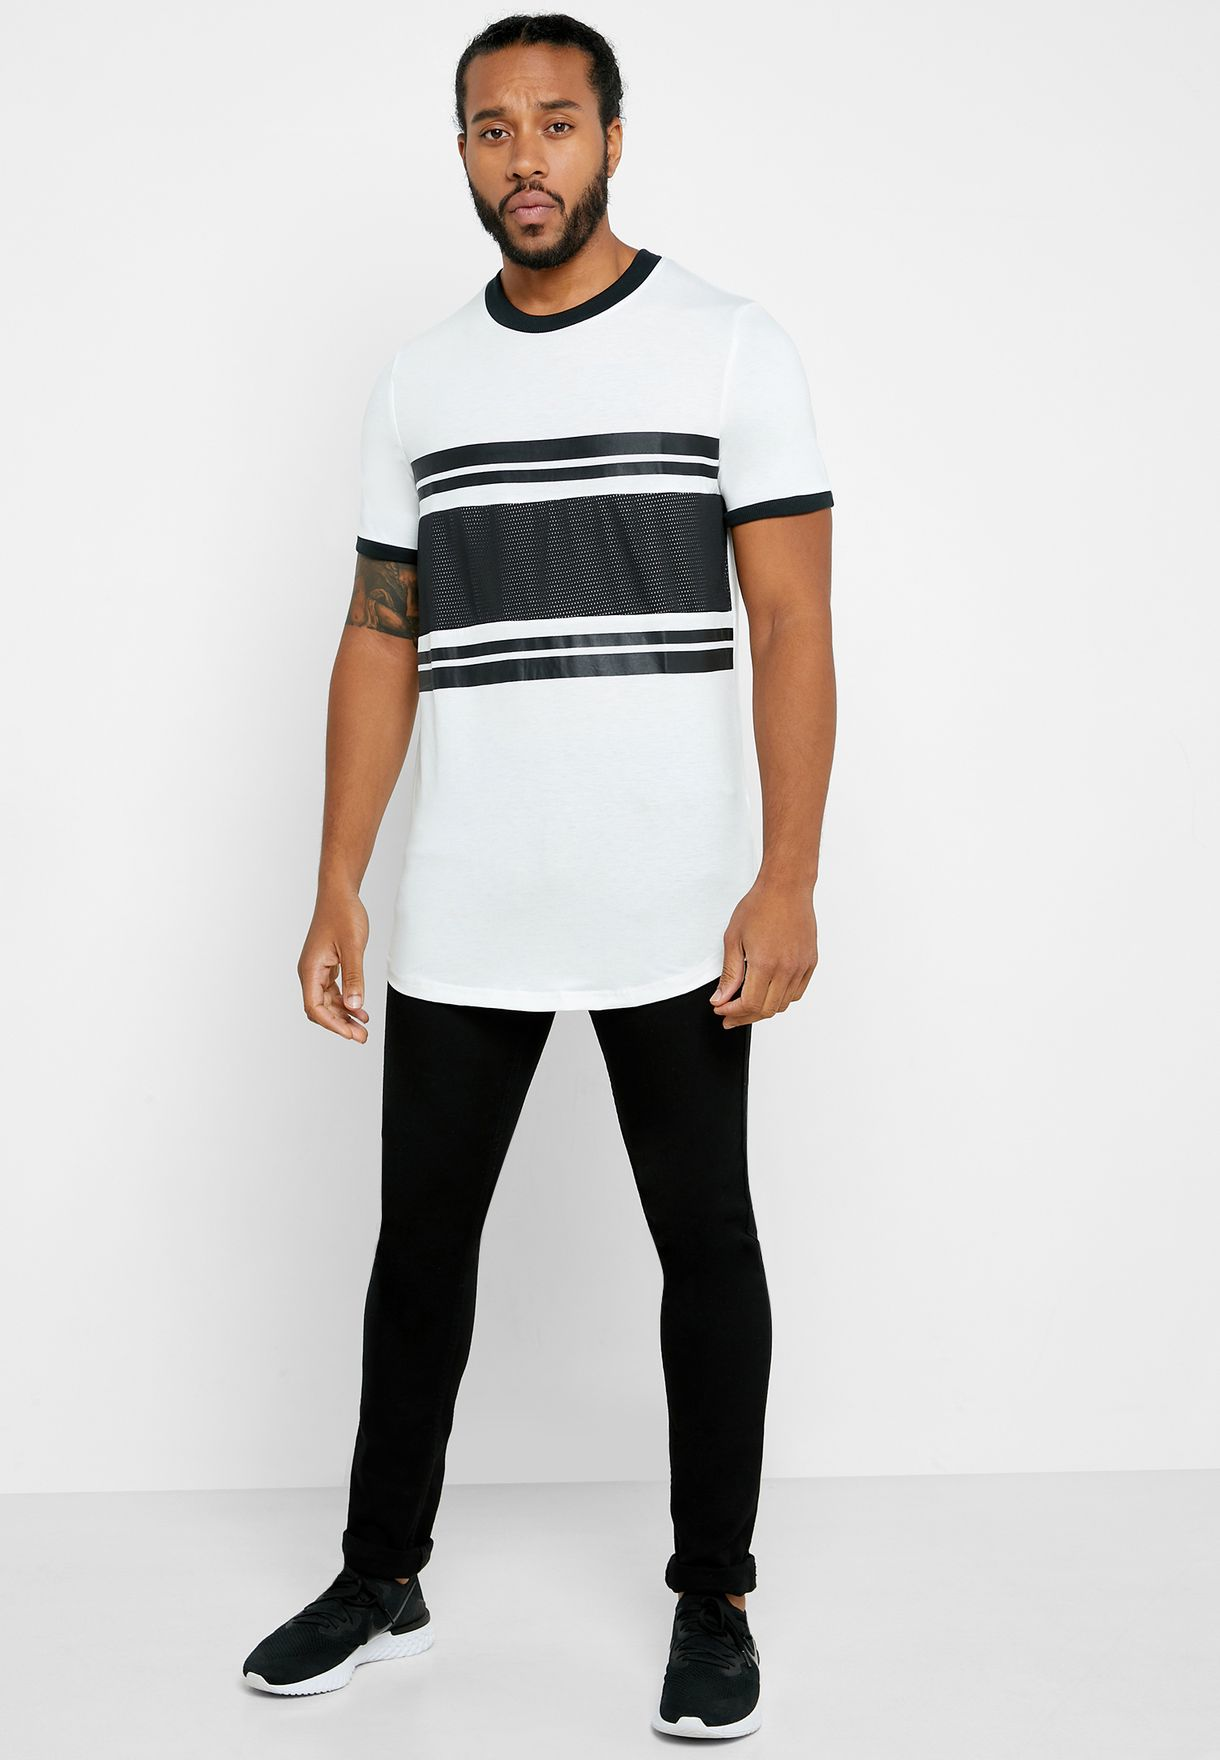 Fearless Slim Fit Crew Neck T-Shirt